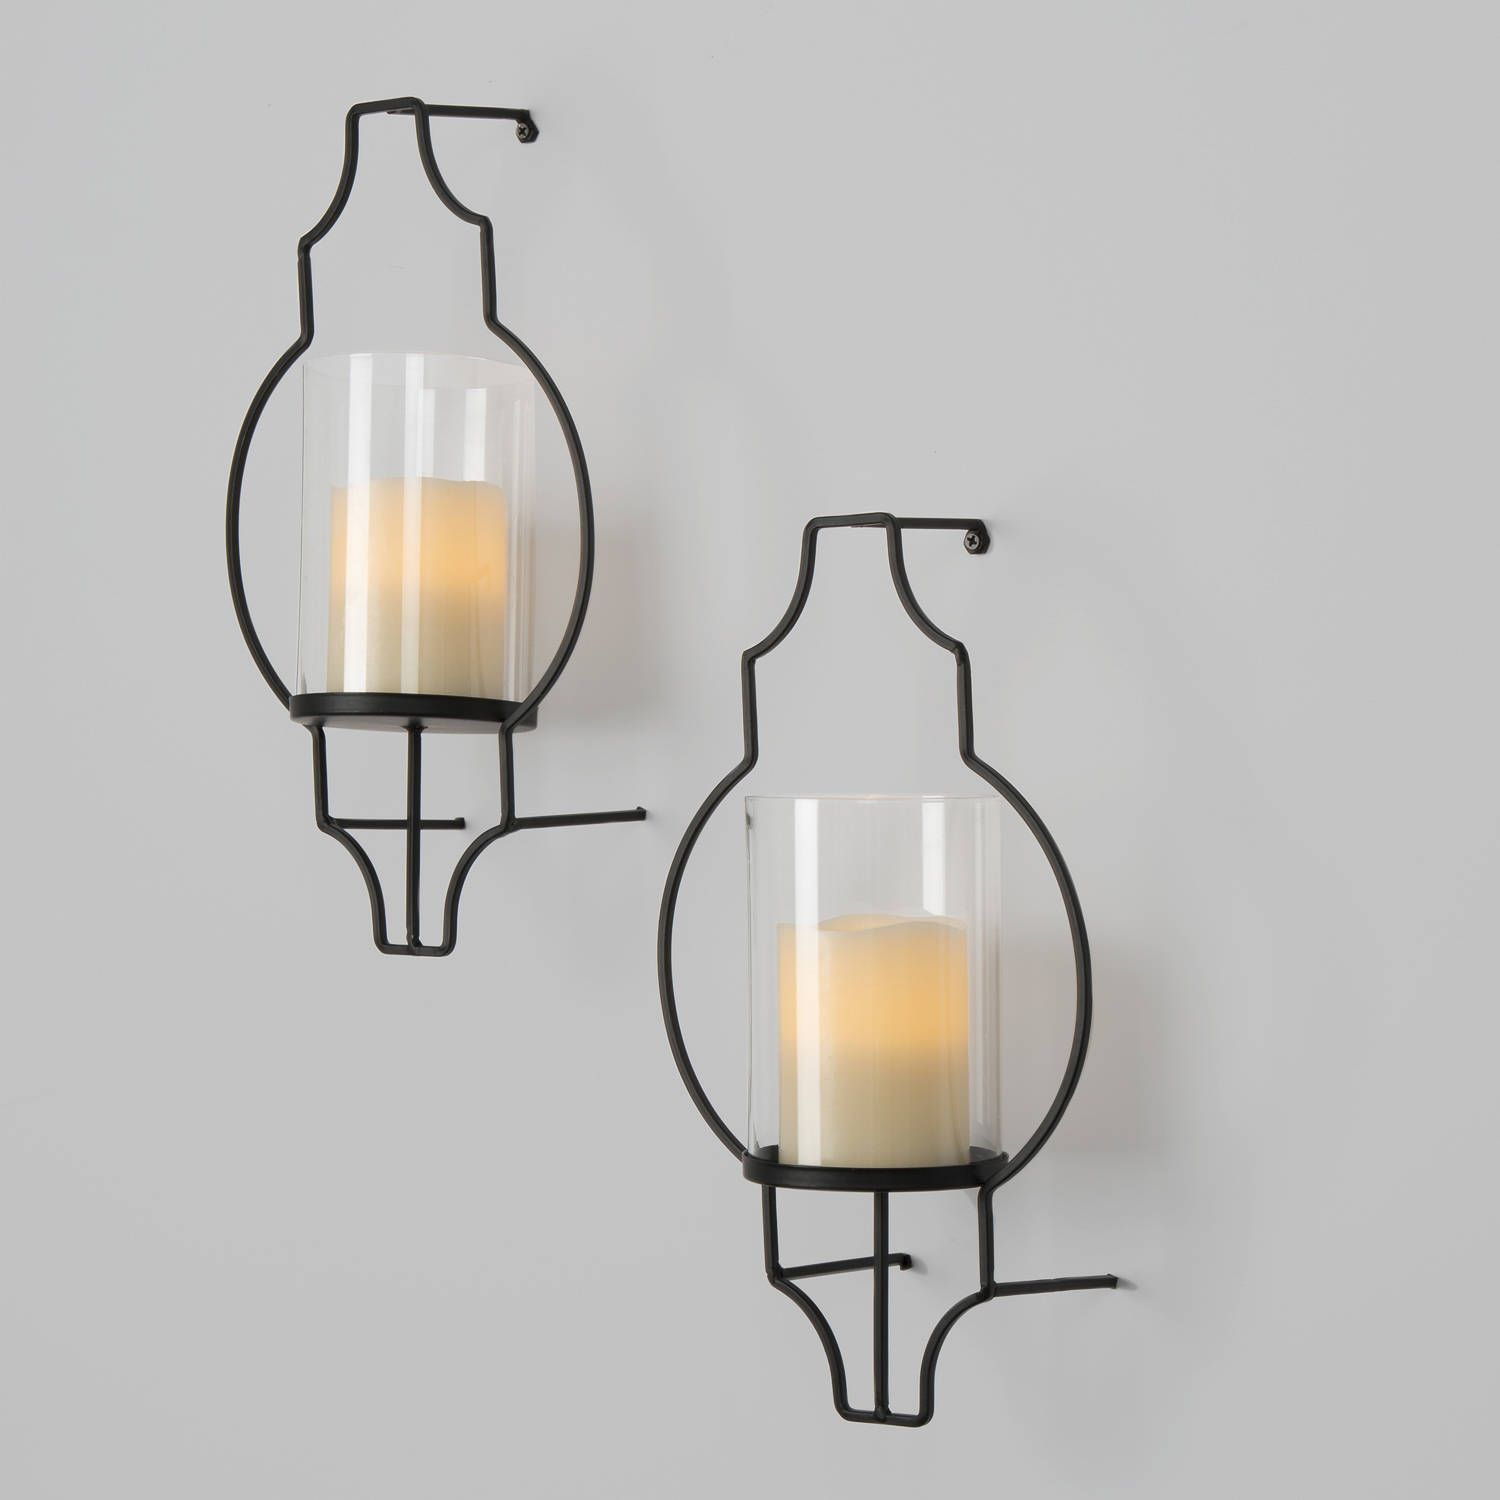 Hurricane Glass Flameless Candle Wall Sconce with Remote ... on Non Electric Wall Sconces For Candles id=35254